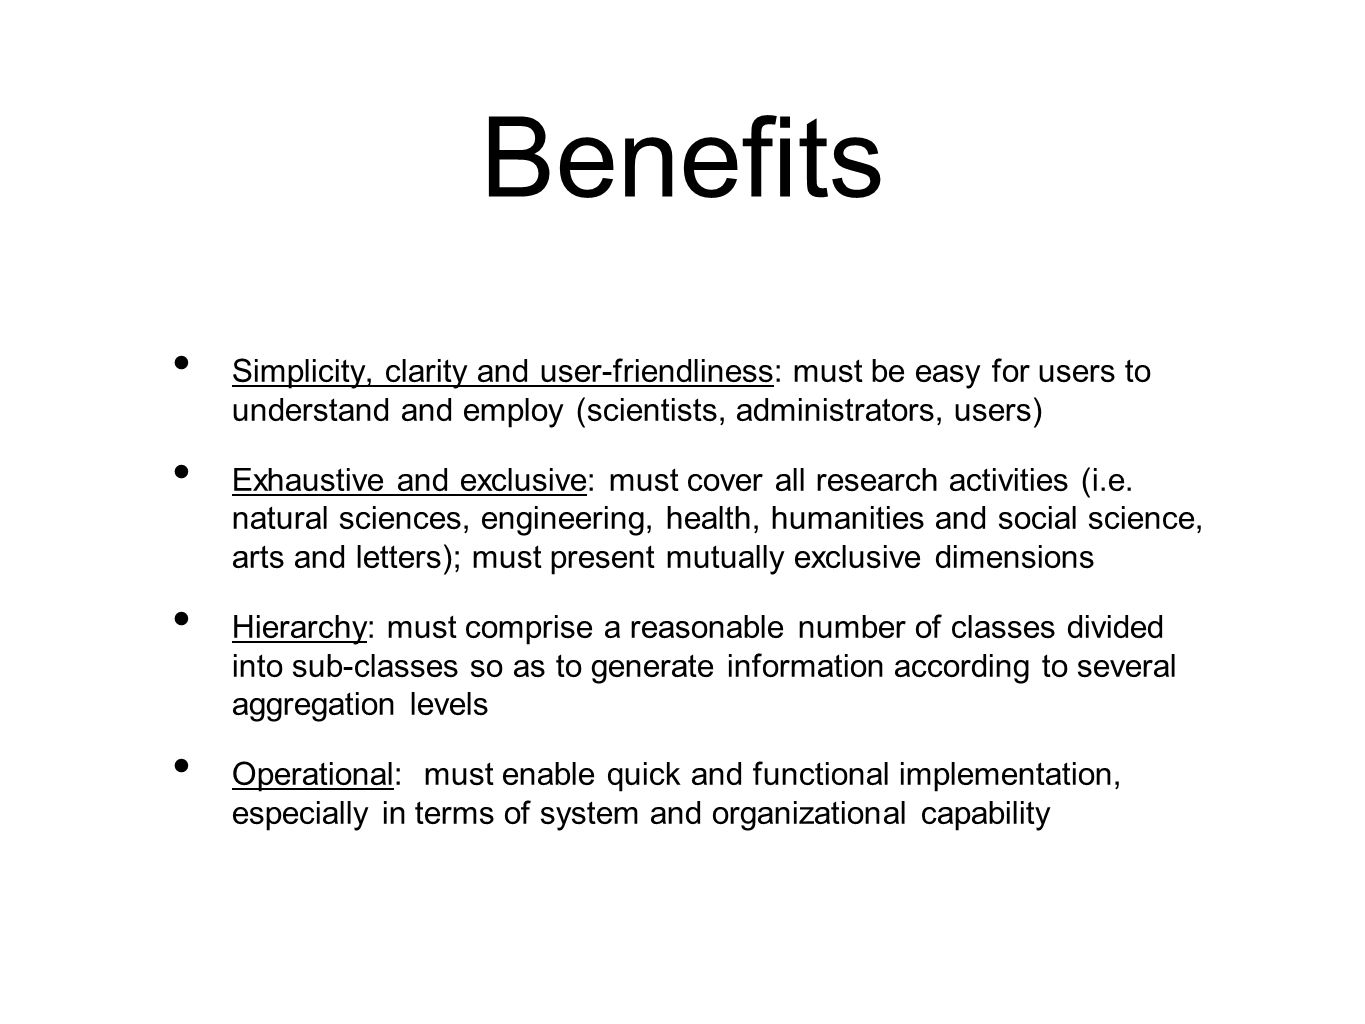 BenefitsSimplicity, clarity and user-friendliness: must be easy for users to understand and employ (scientists, administrators, users)